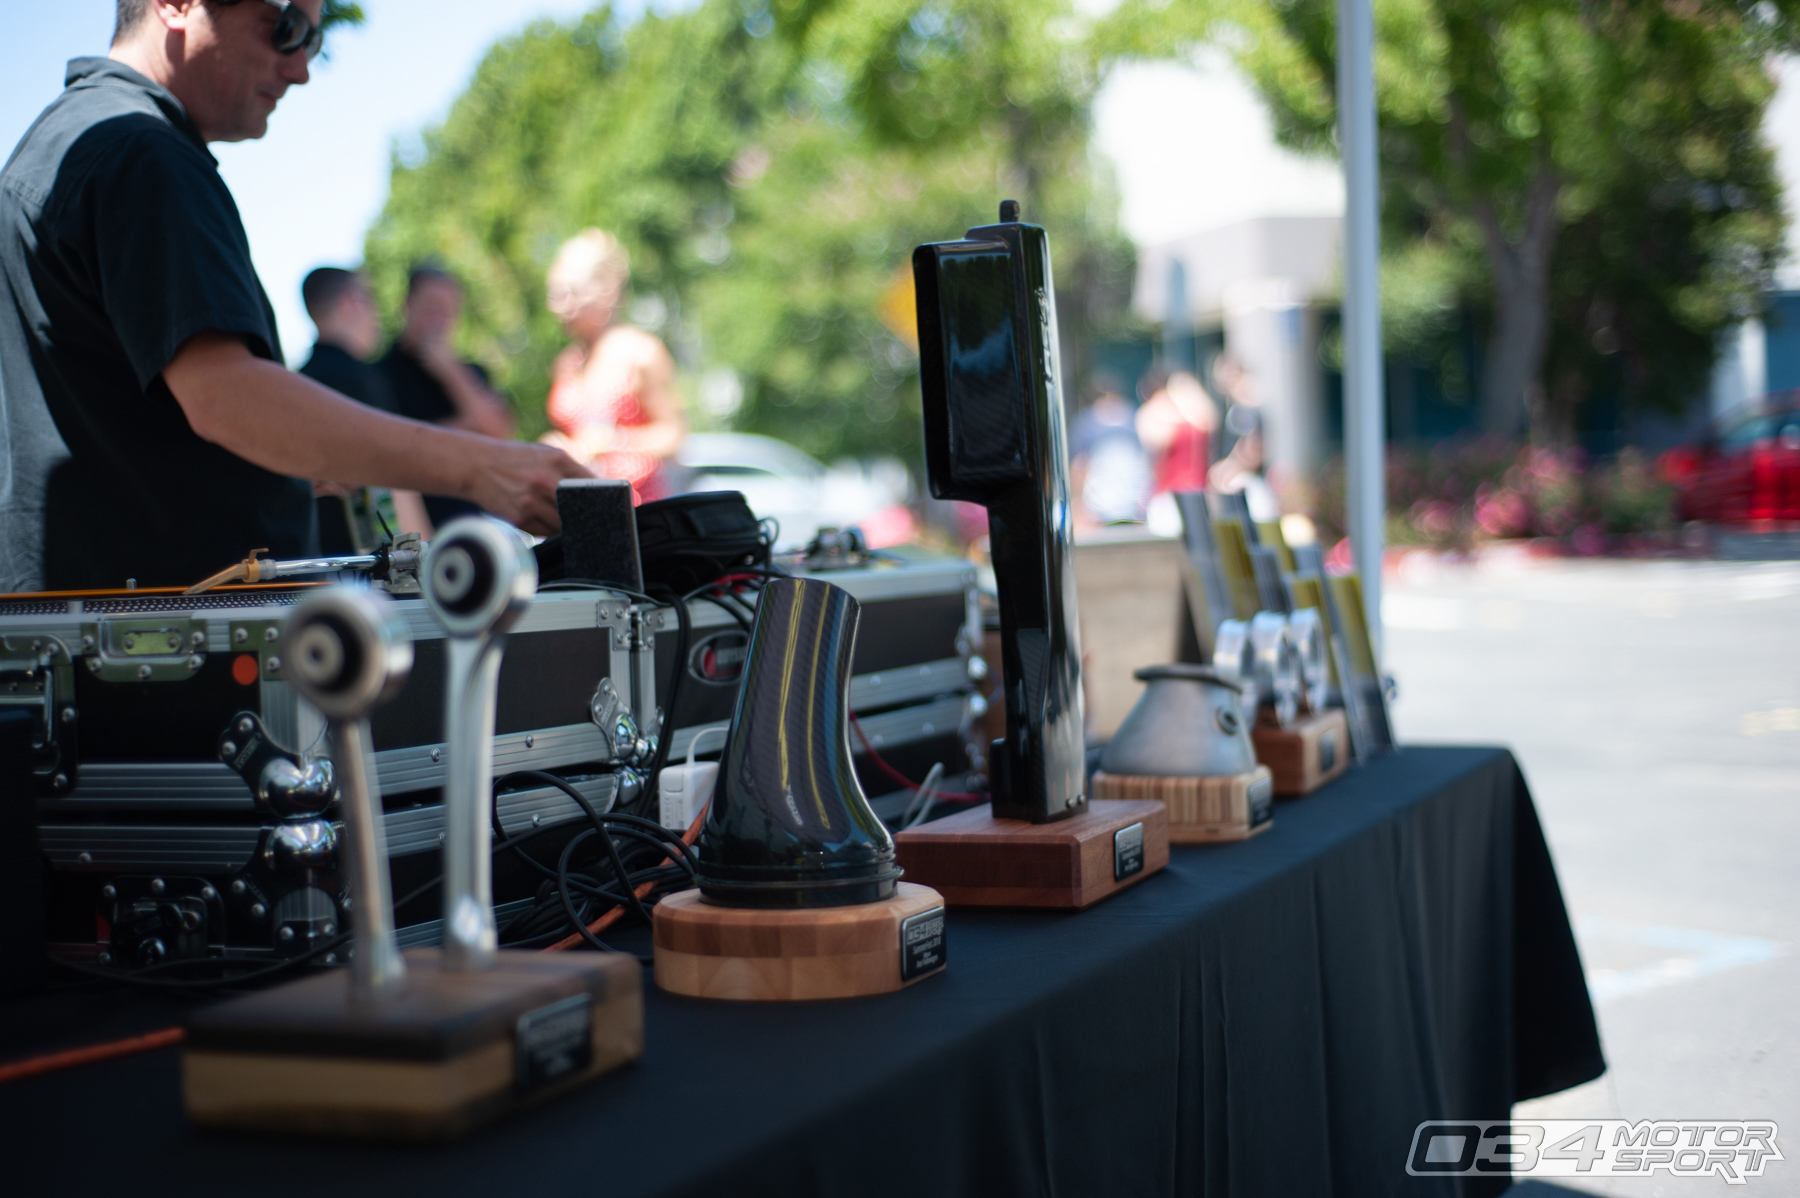 034Motorsport SummerFest Car Show Trophies